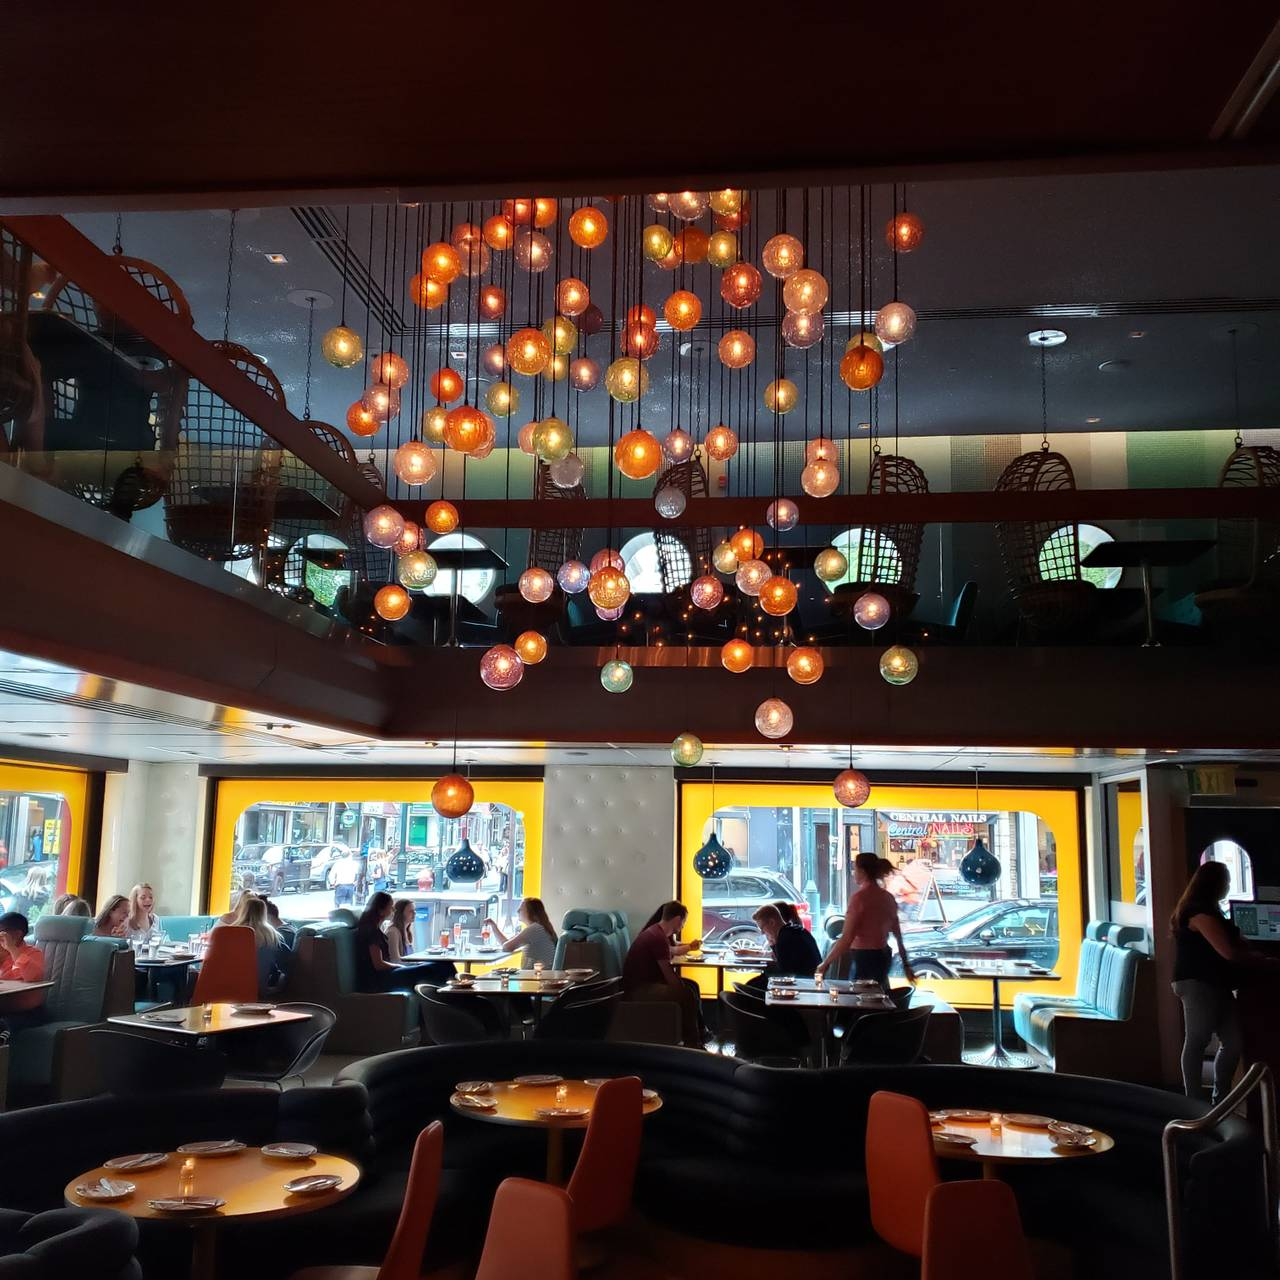 Justdial Hotels: The Best Image Imagefree.Co